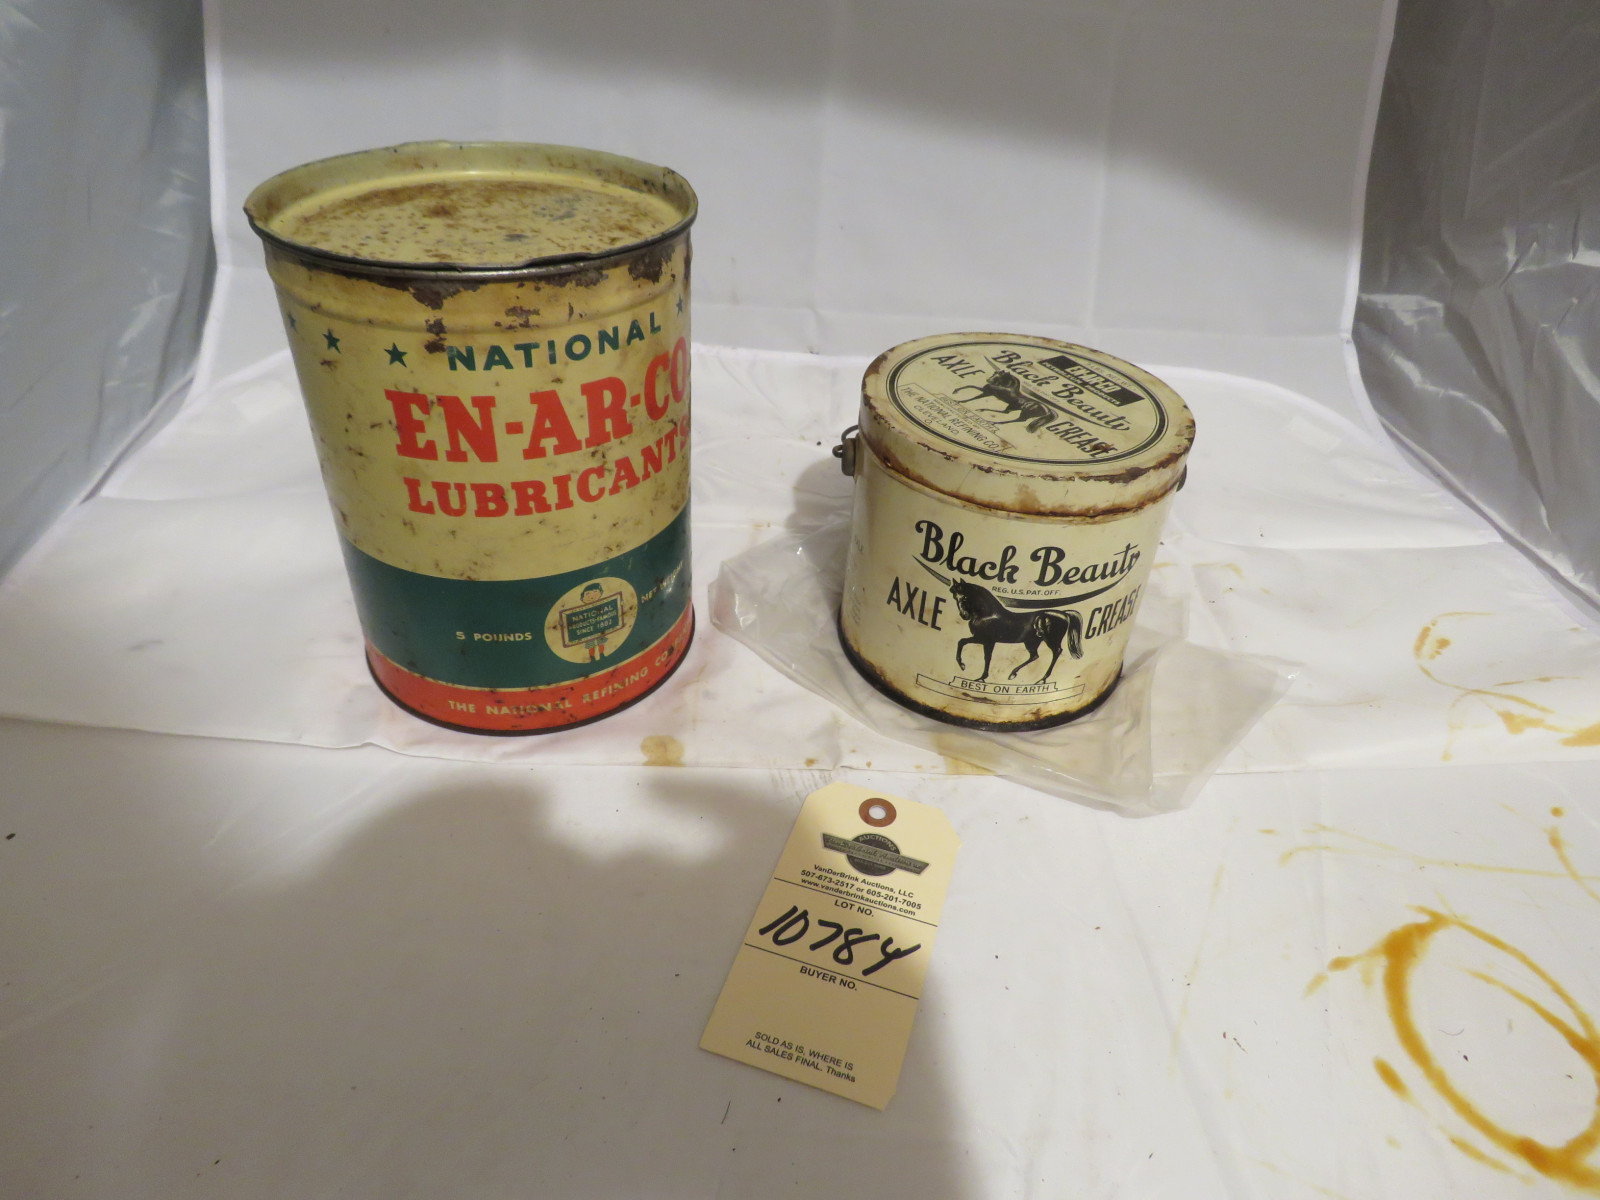 EN-R-CO and Black Beauty Oil Cans - Image 1